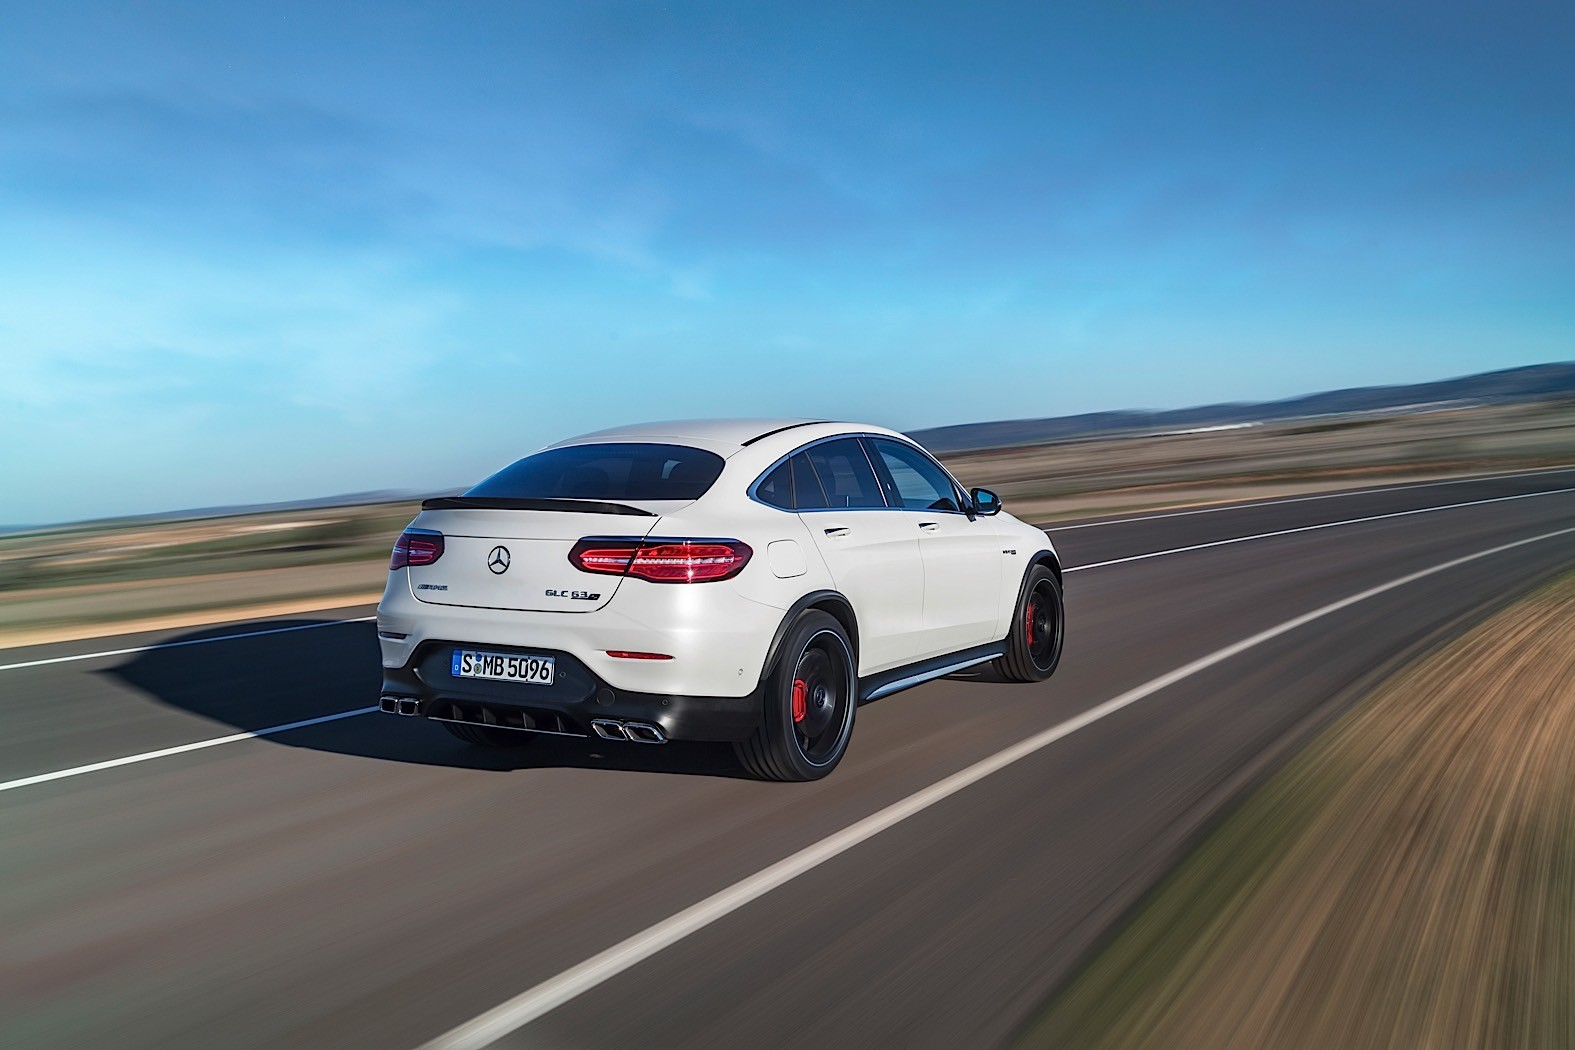 Mercedes Amg Glc 63 Pickup Truck Is For The Rich Rednecks